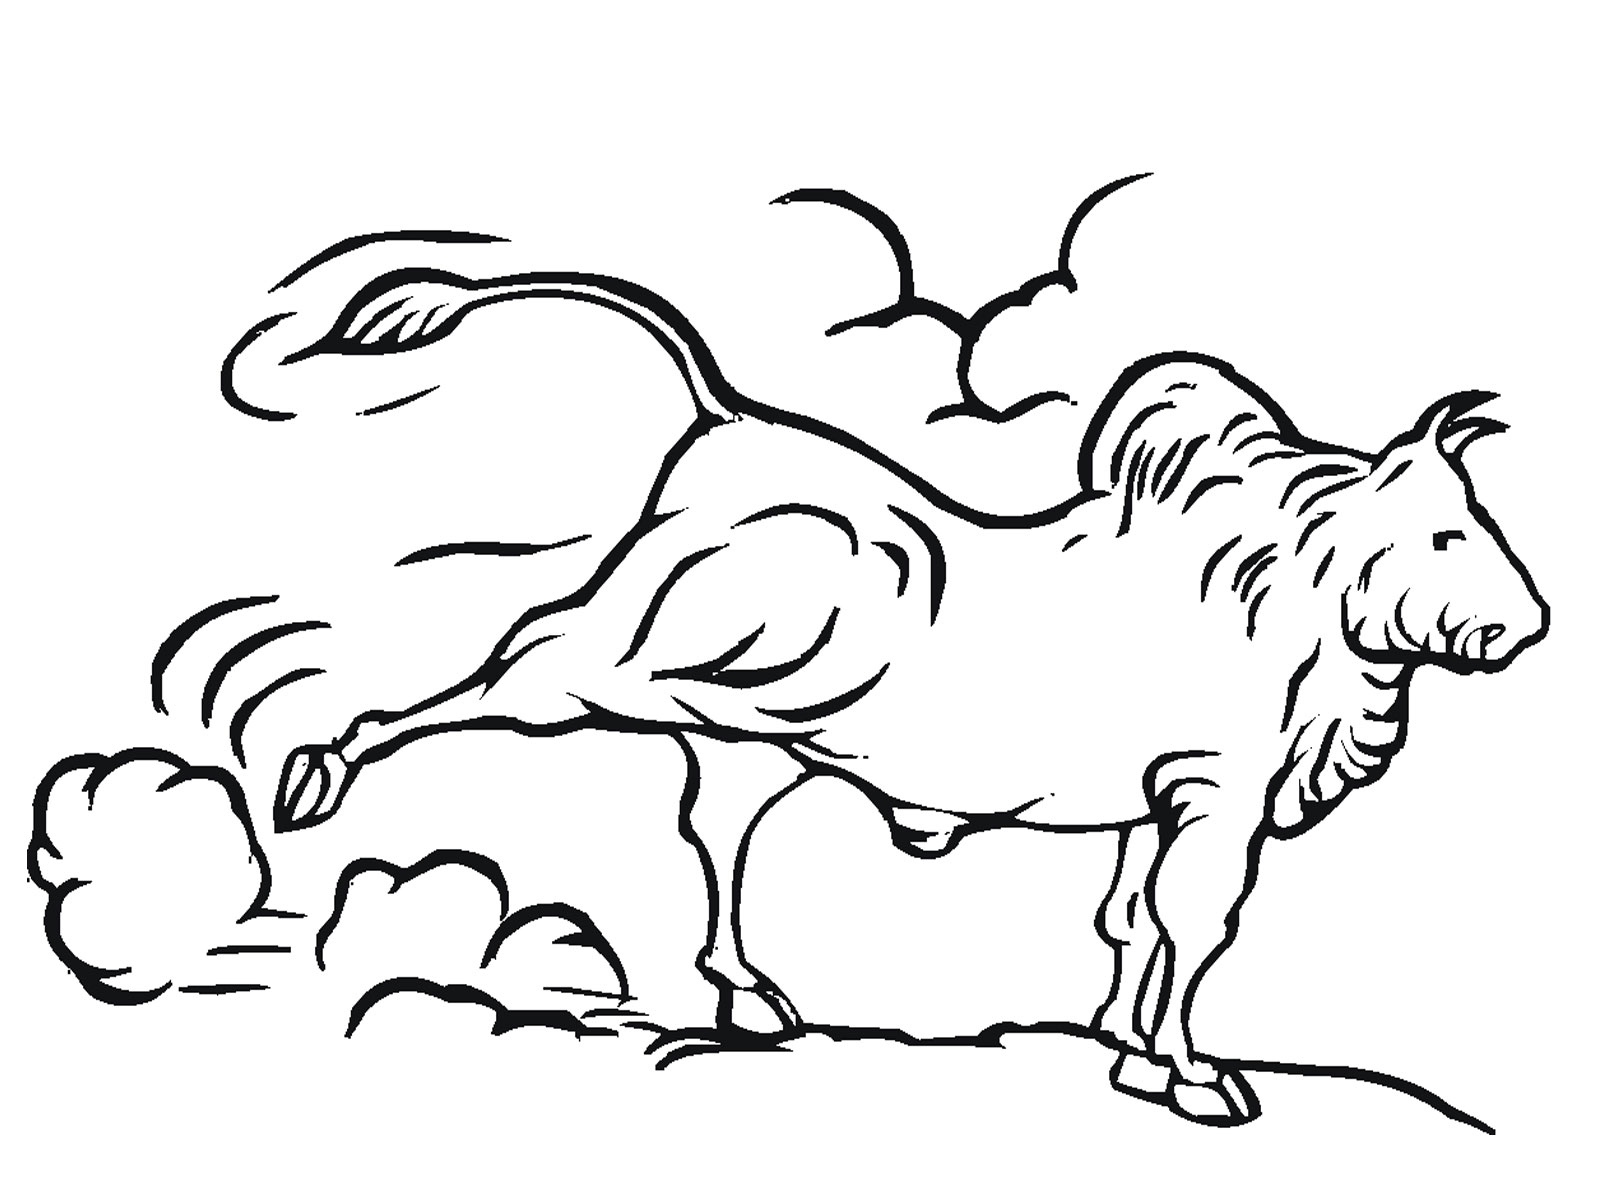 1600x1200 Bull Coloring Pages Printable Realistic Coloring Pages